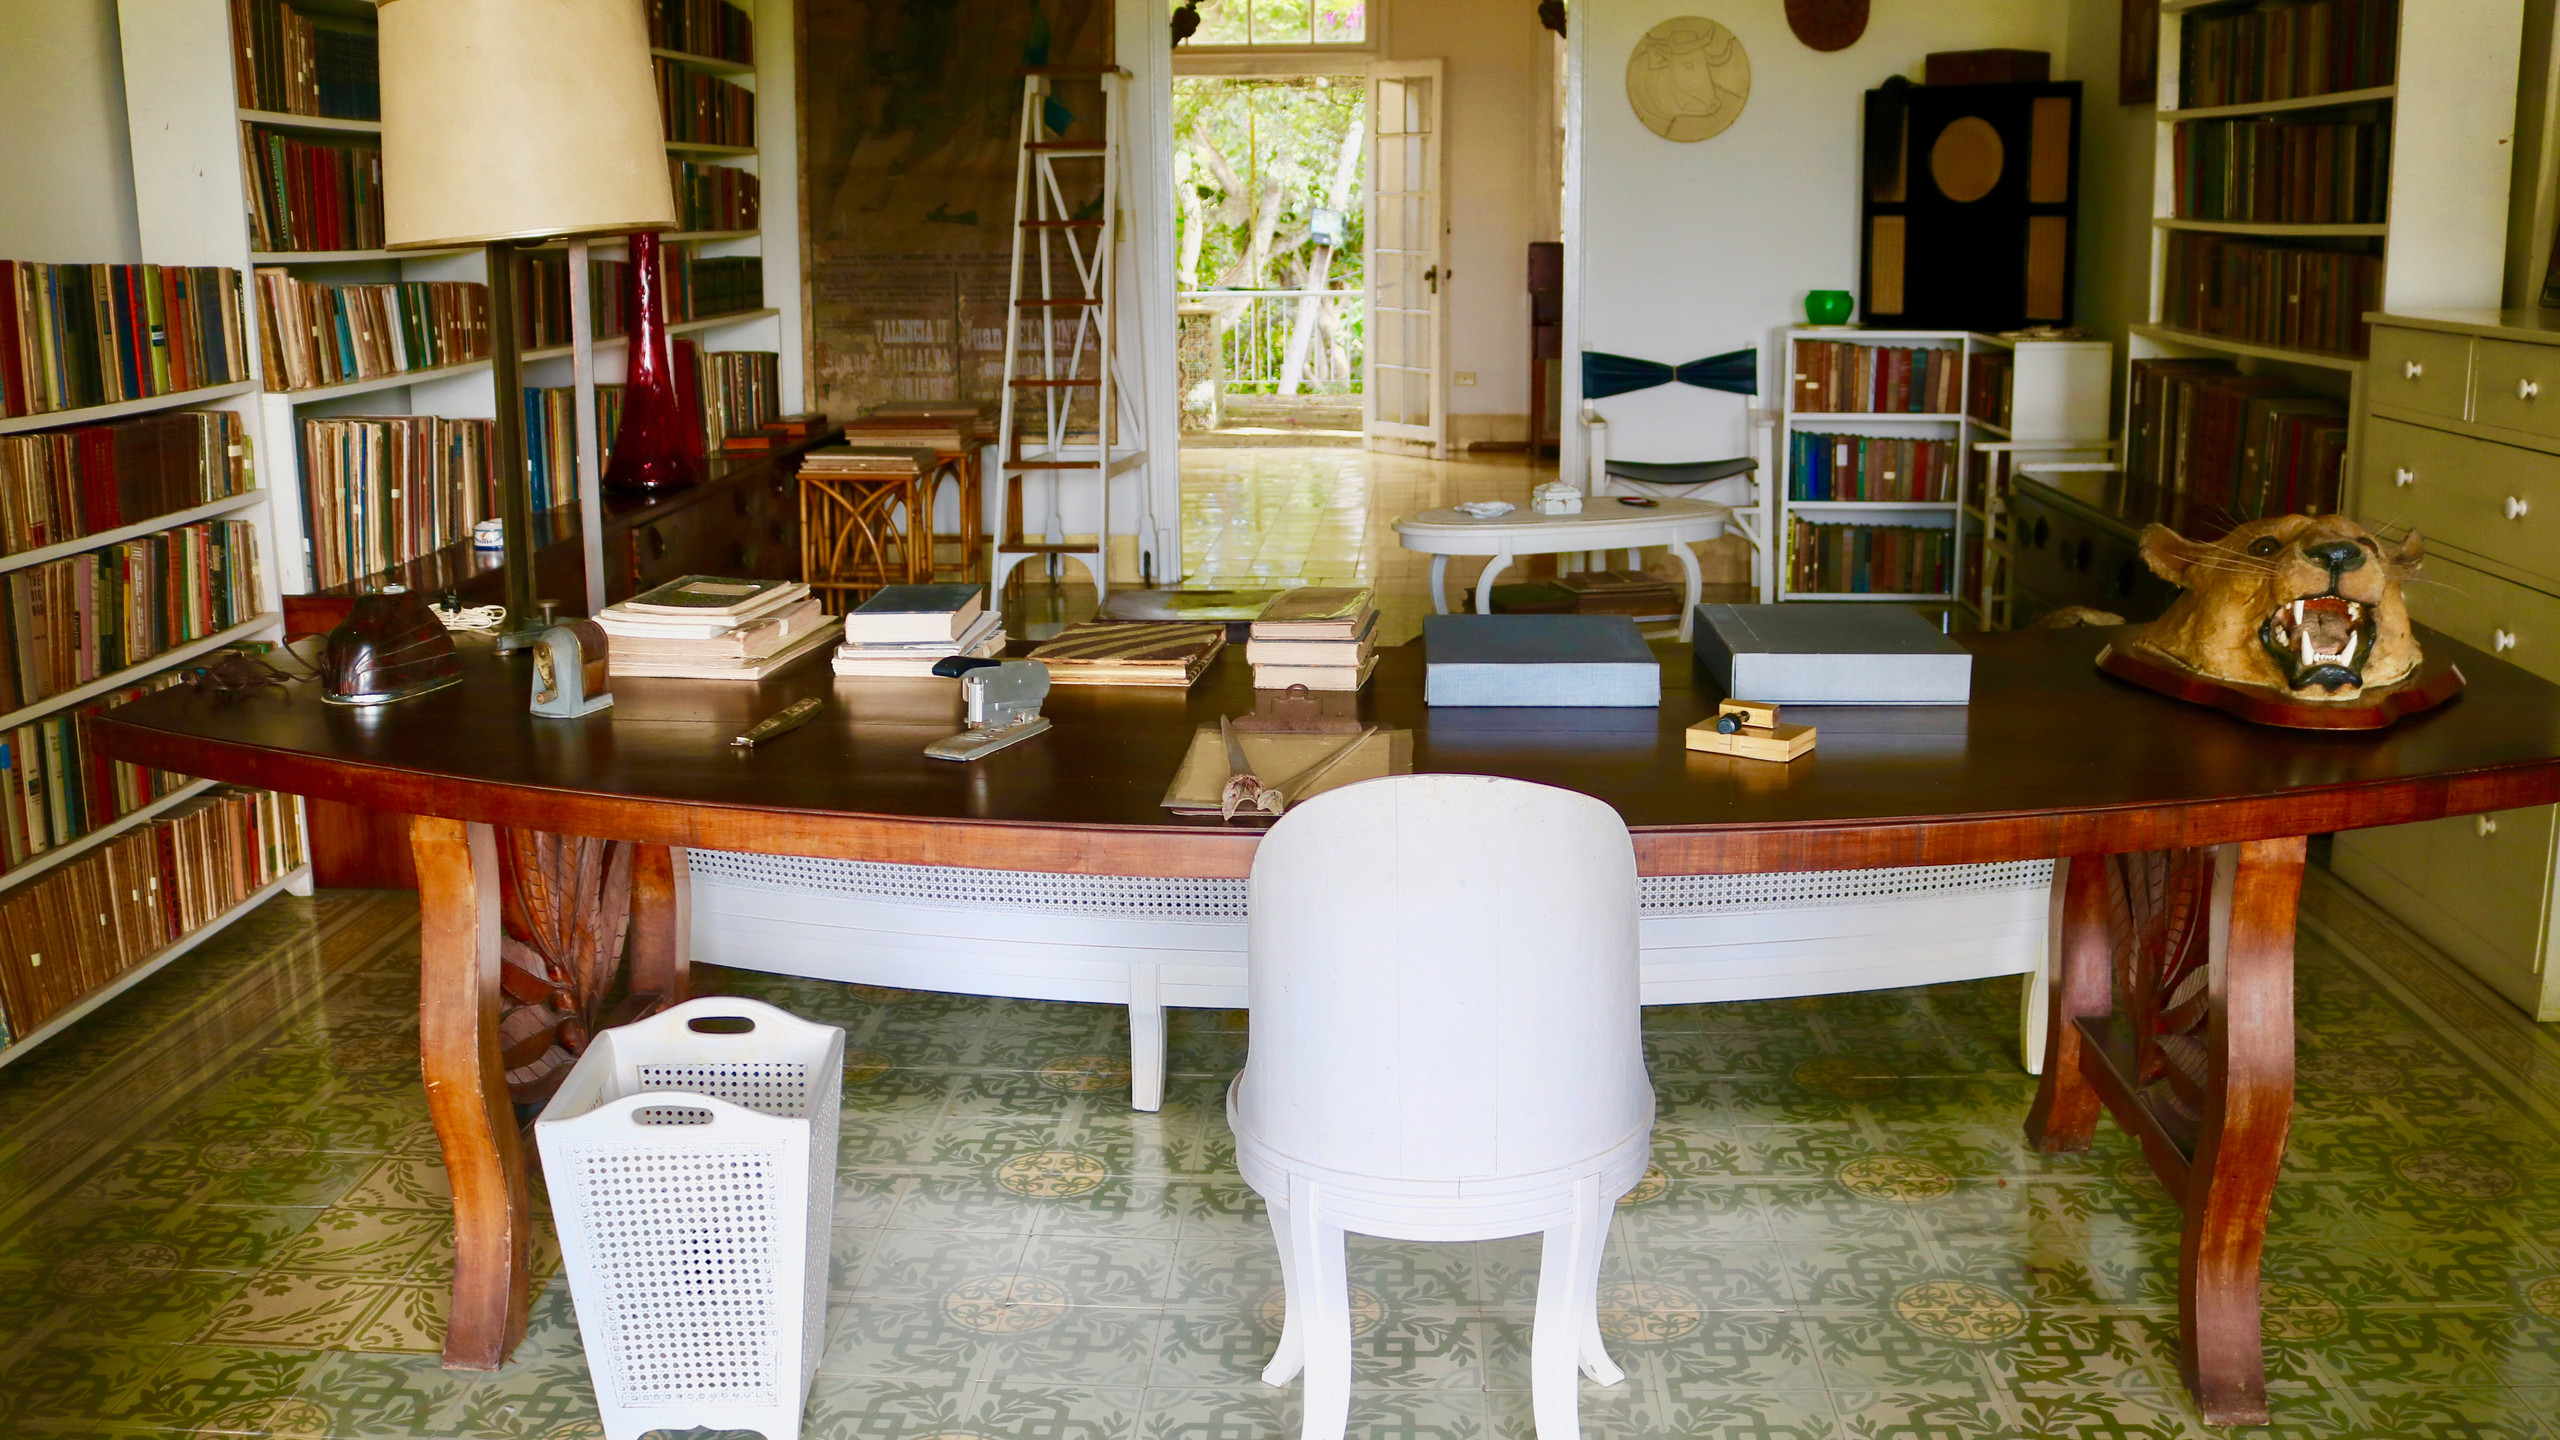 Large desk with white chair surrounded by bookshelves in Ernest Hemingway's Finca Vigia home in Cuba.